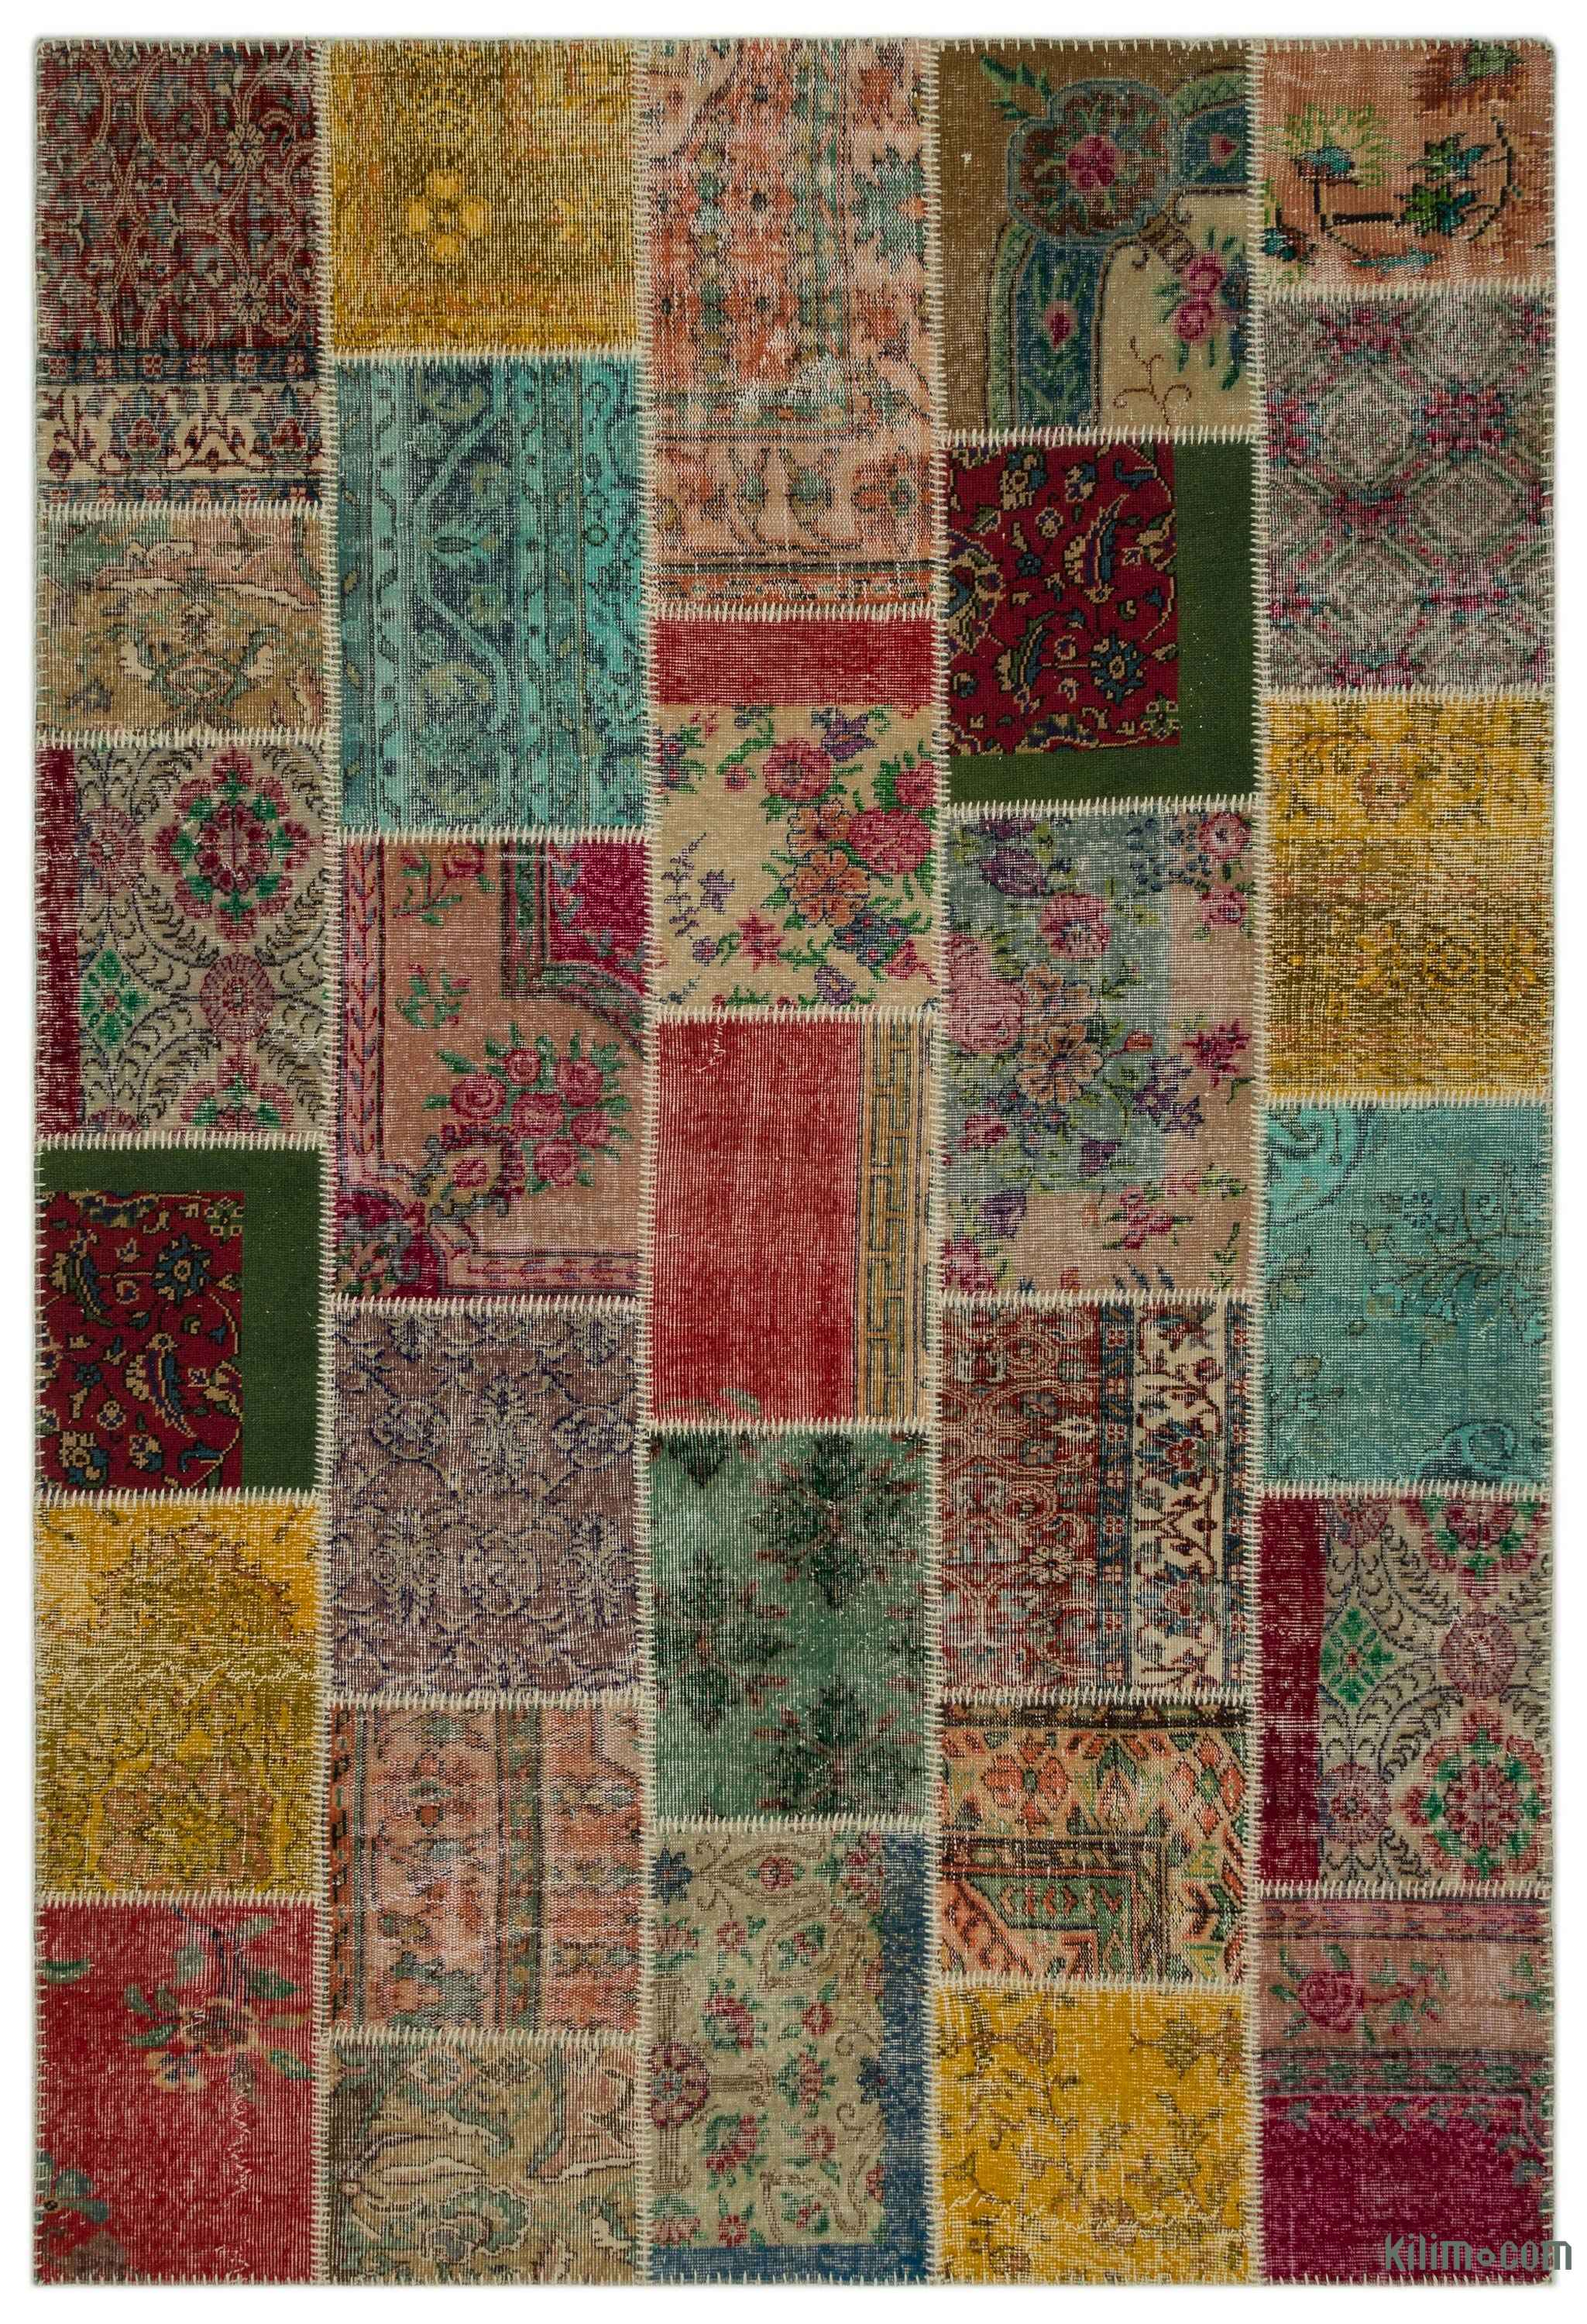 K0027092 Turkish Patchwork Rug 6 3 X 9 2 75 In X 110 In